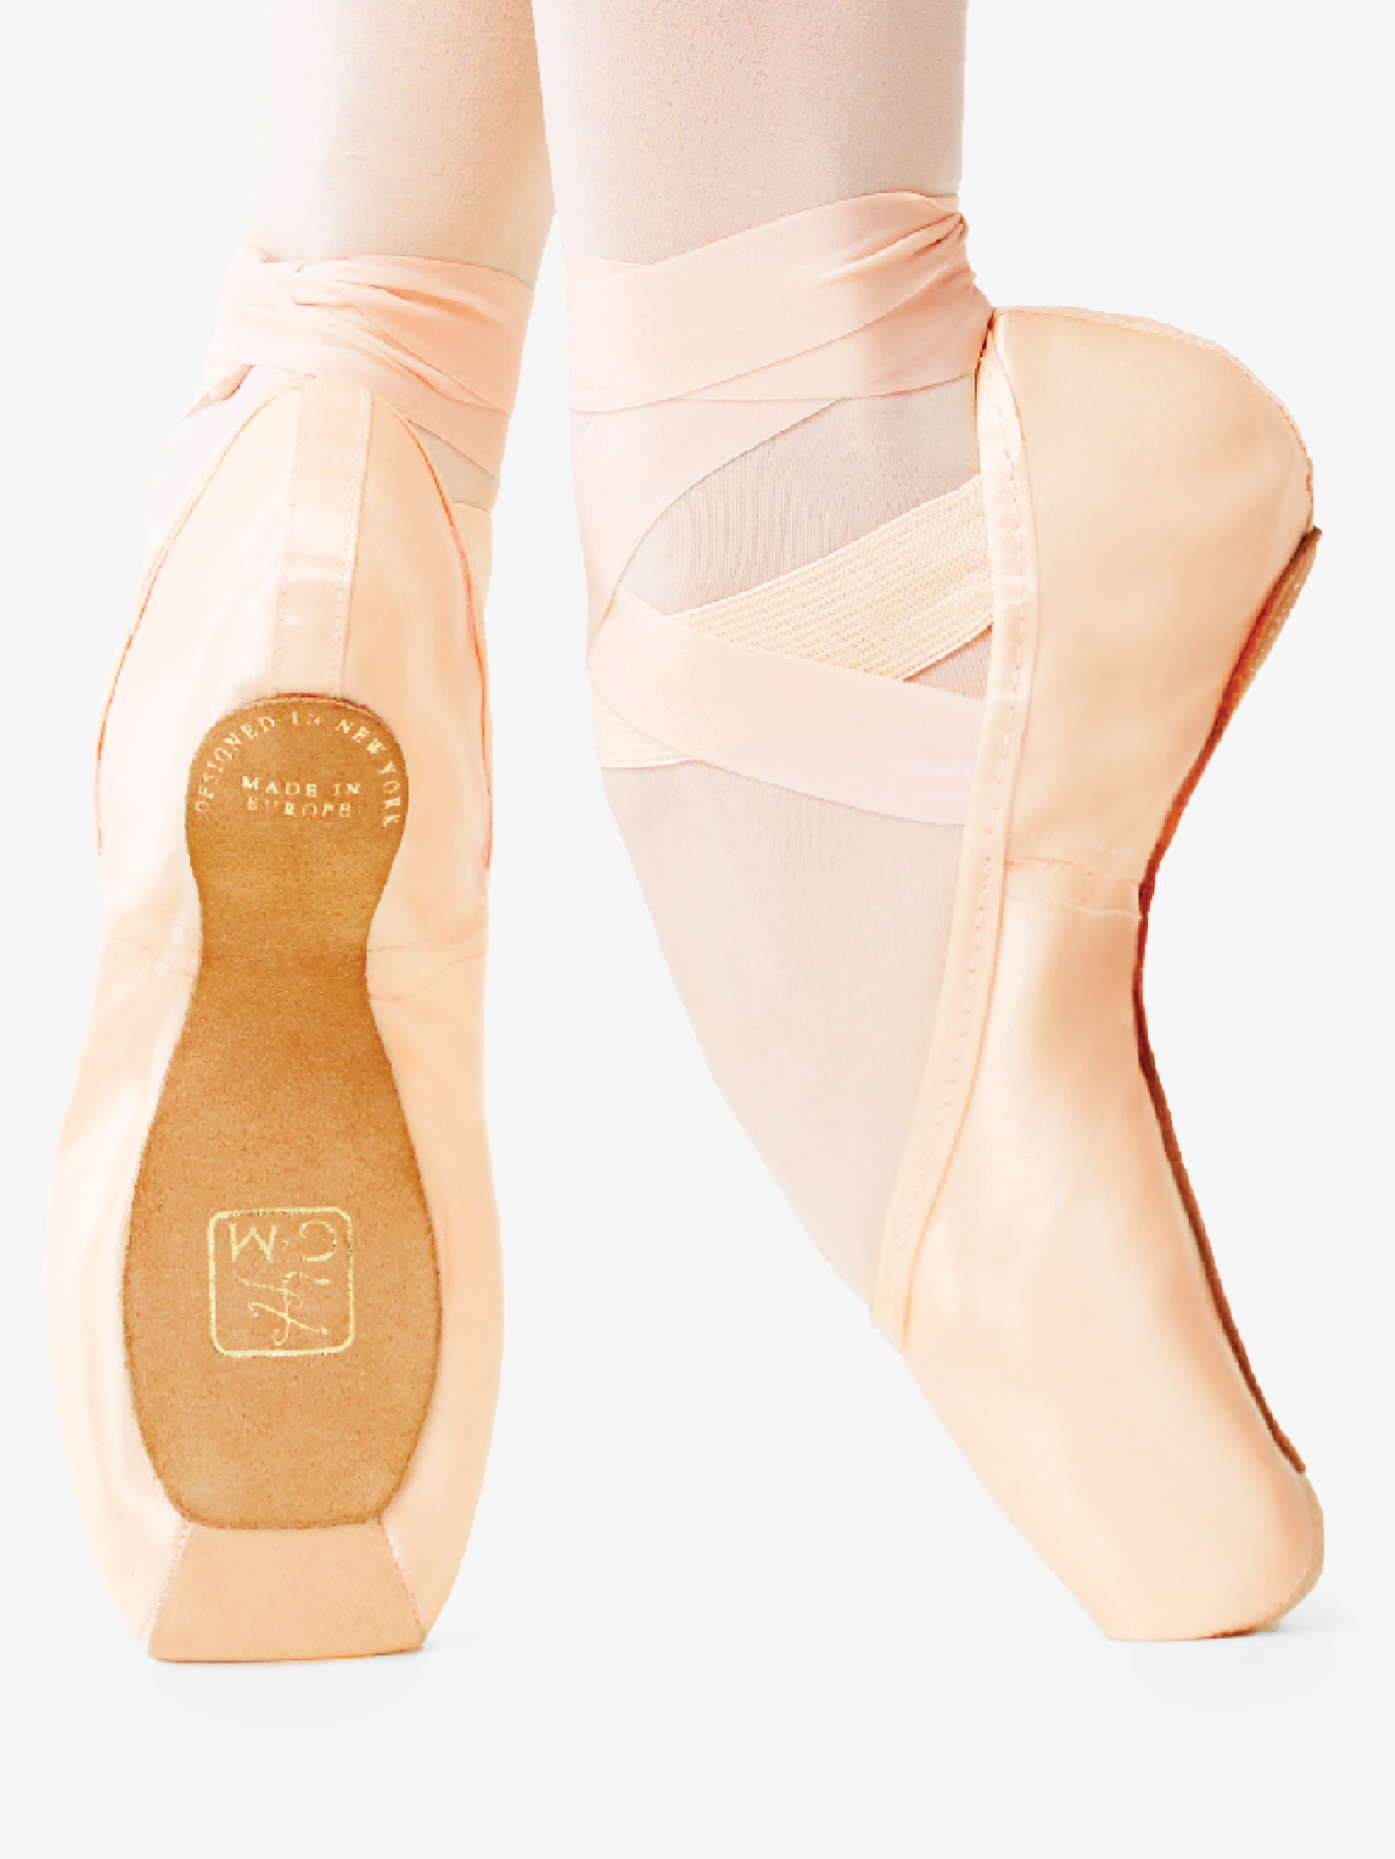 37628f89f3b9 Sculpted Fit Pointe Shoes - Pointe Shoes